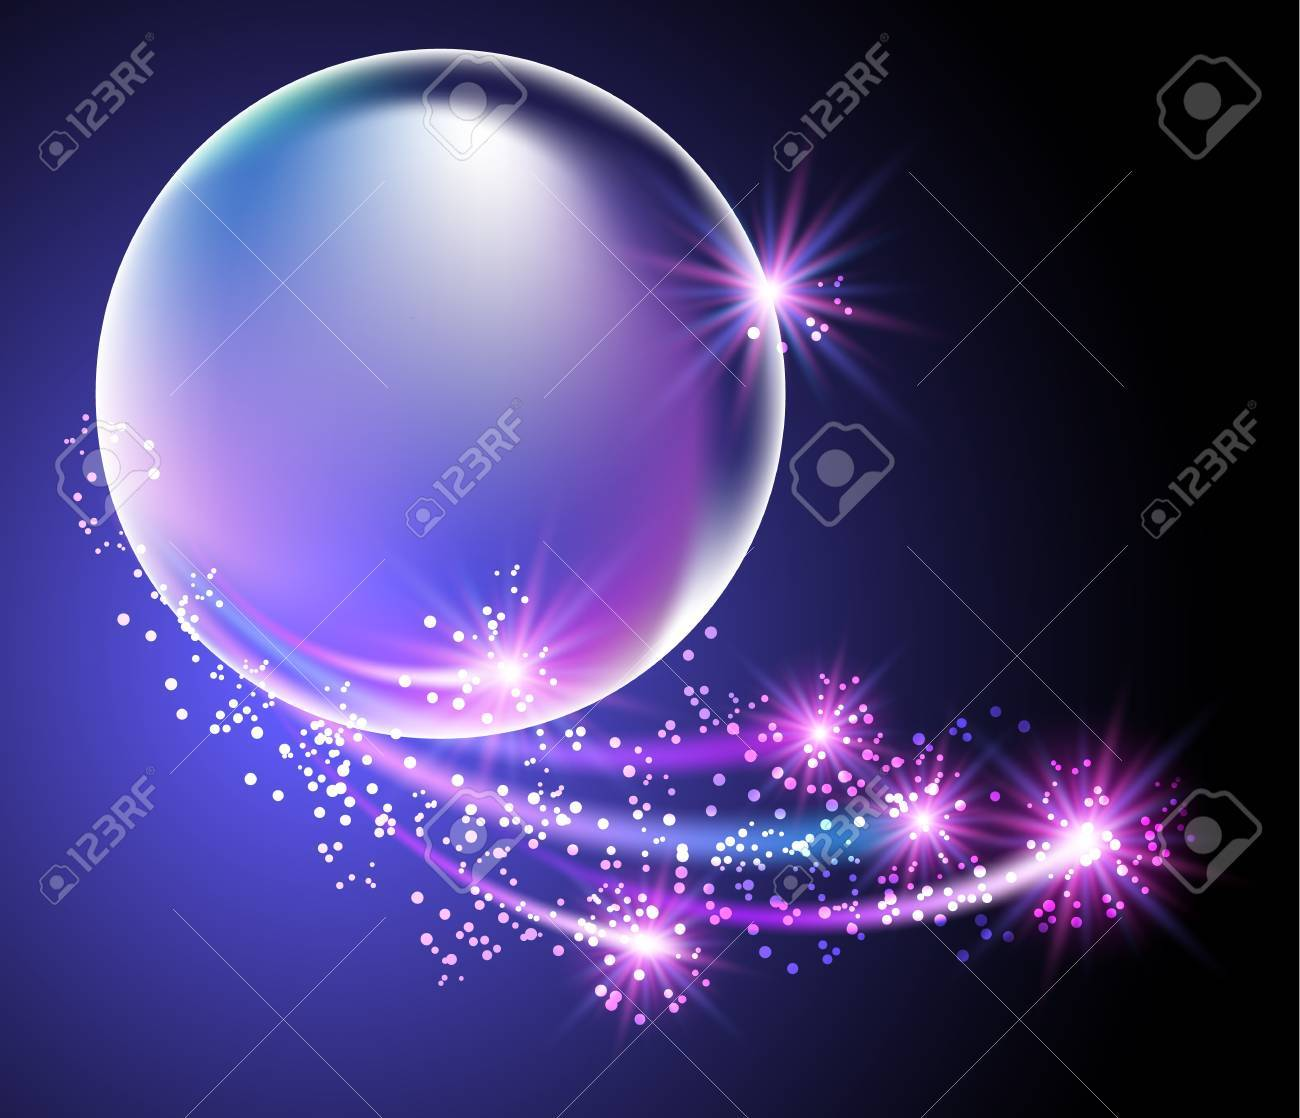 Glowing background with bubbles and stars Stock Vector - 22072436